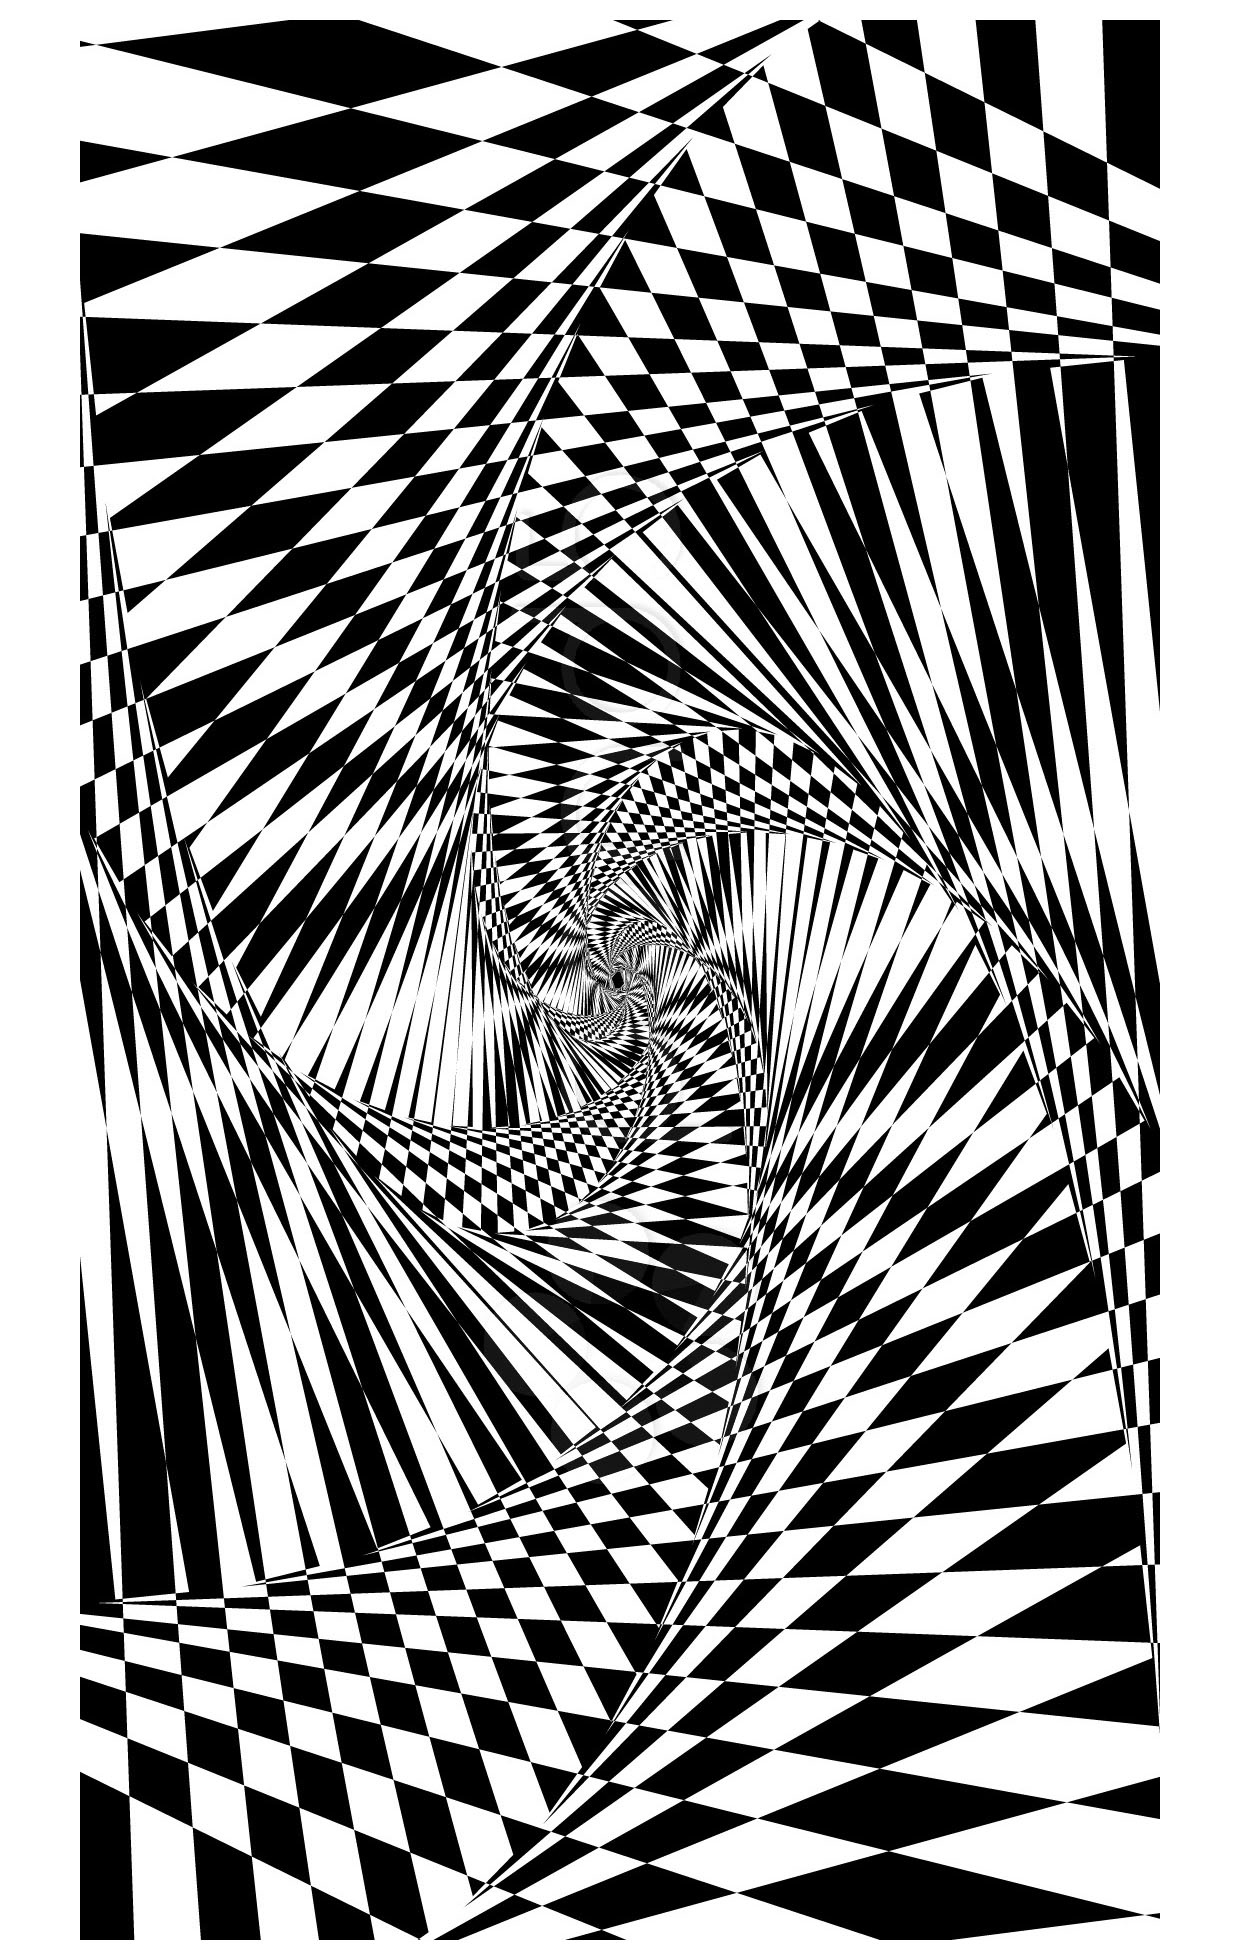 psychedelic coloring pages psychedelic coloring pages to download and print for free coloring psychedelic pages 1 1